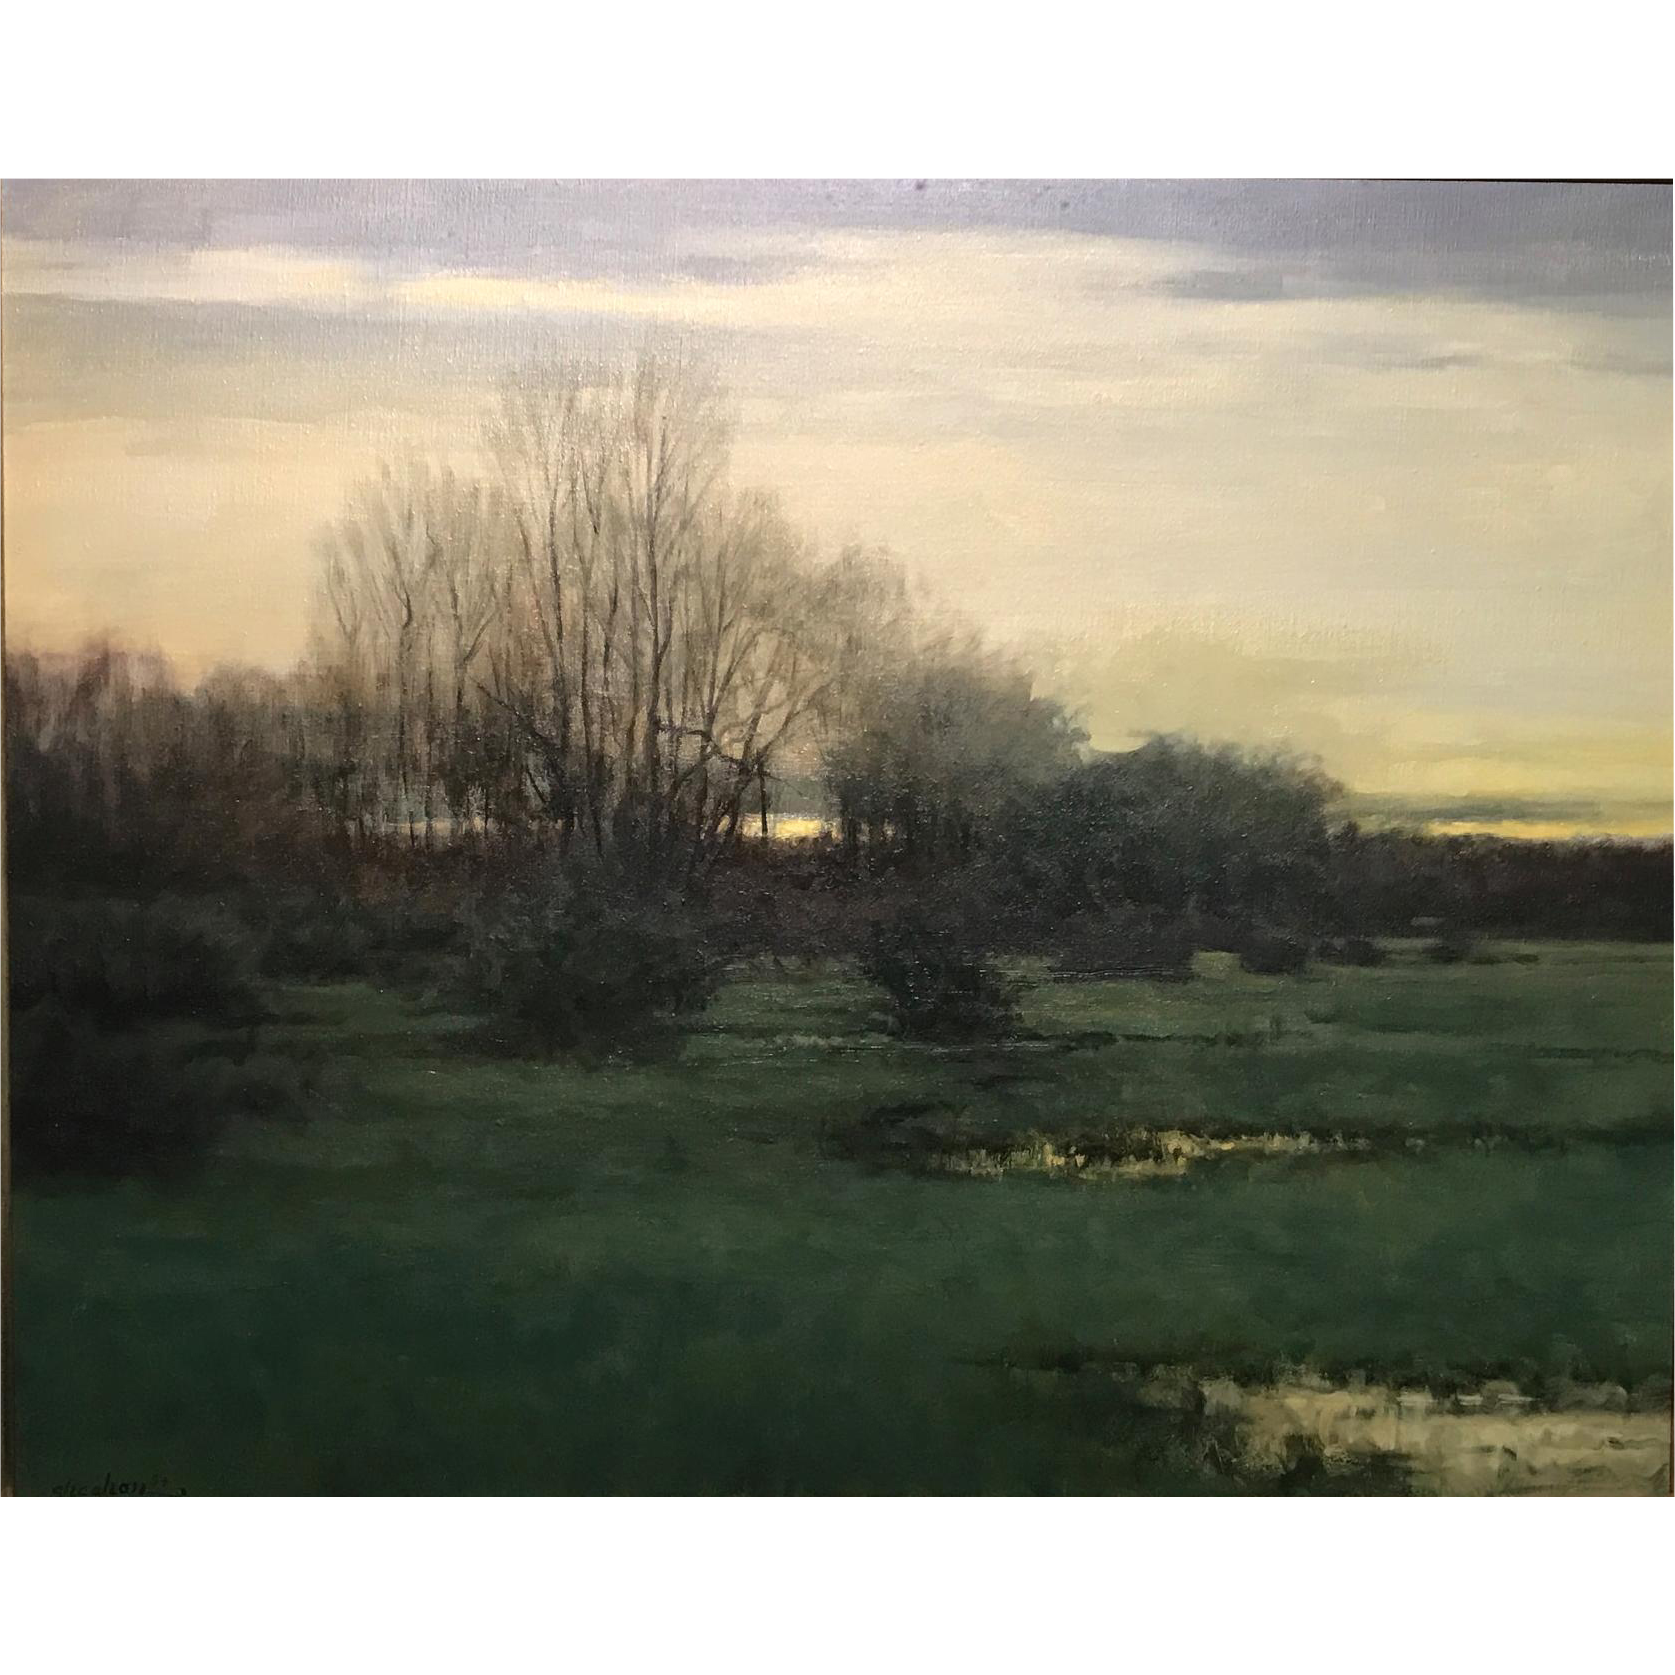 Dennis Sheehan Landscape Oil Painting - Almanac Pond, Nantucket MA 1994